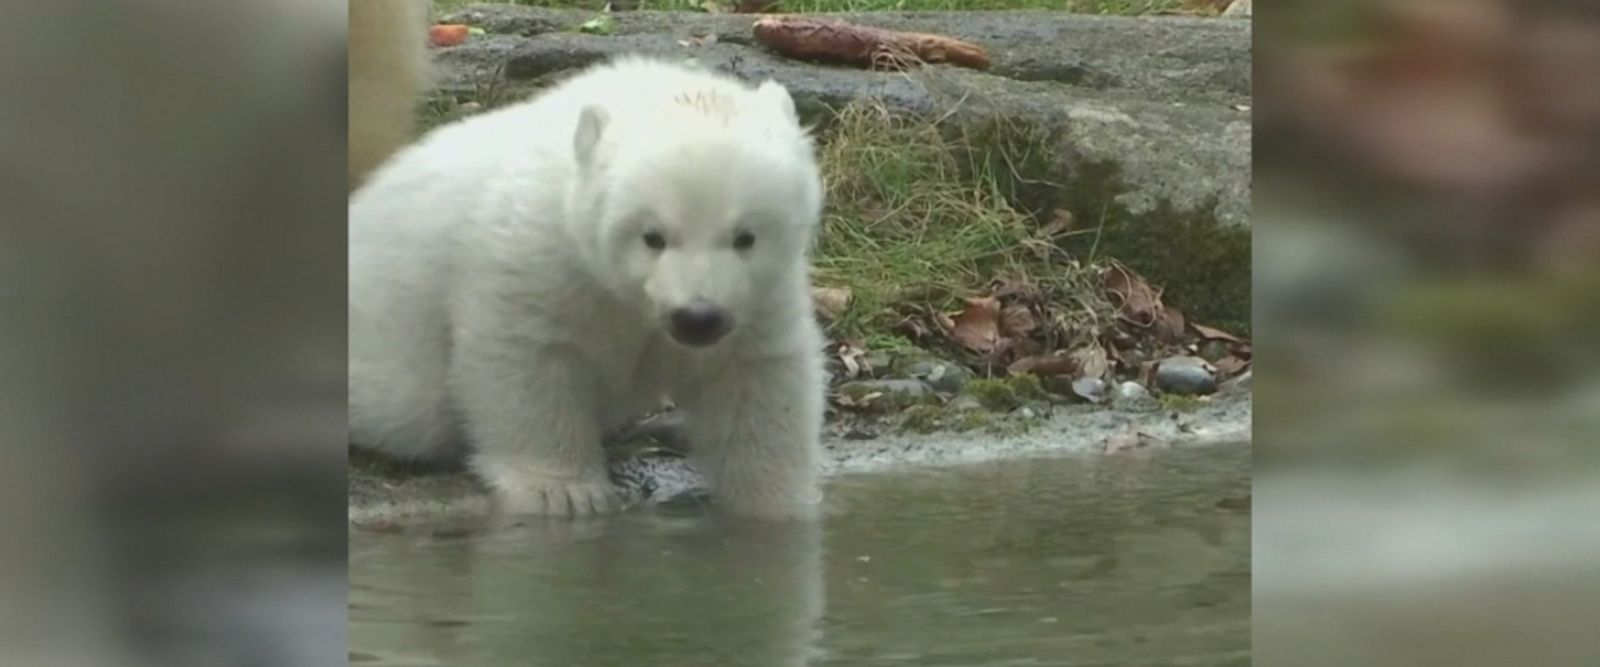 14-week old polar bear born at an animal park in Germany makes her first trip outside under the watchful eye of her mom.